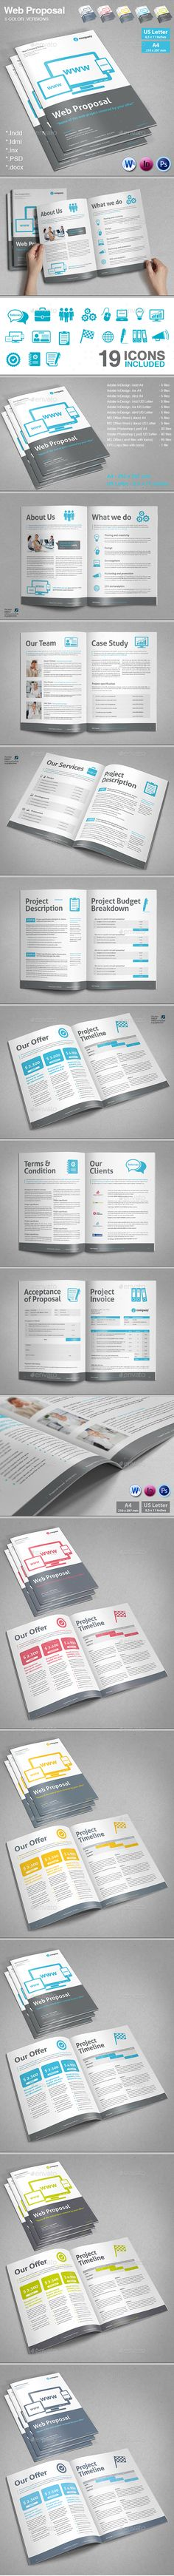 Official Proposal Template A Modern & Proposal Professional And Very Usefull Template For A .